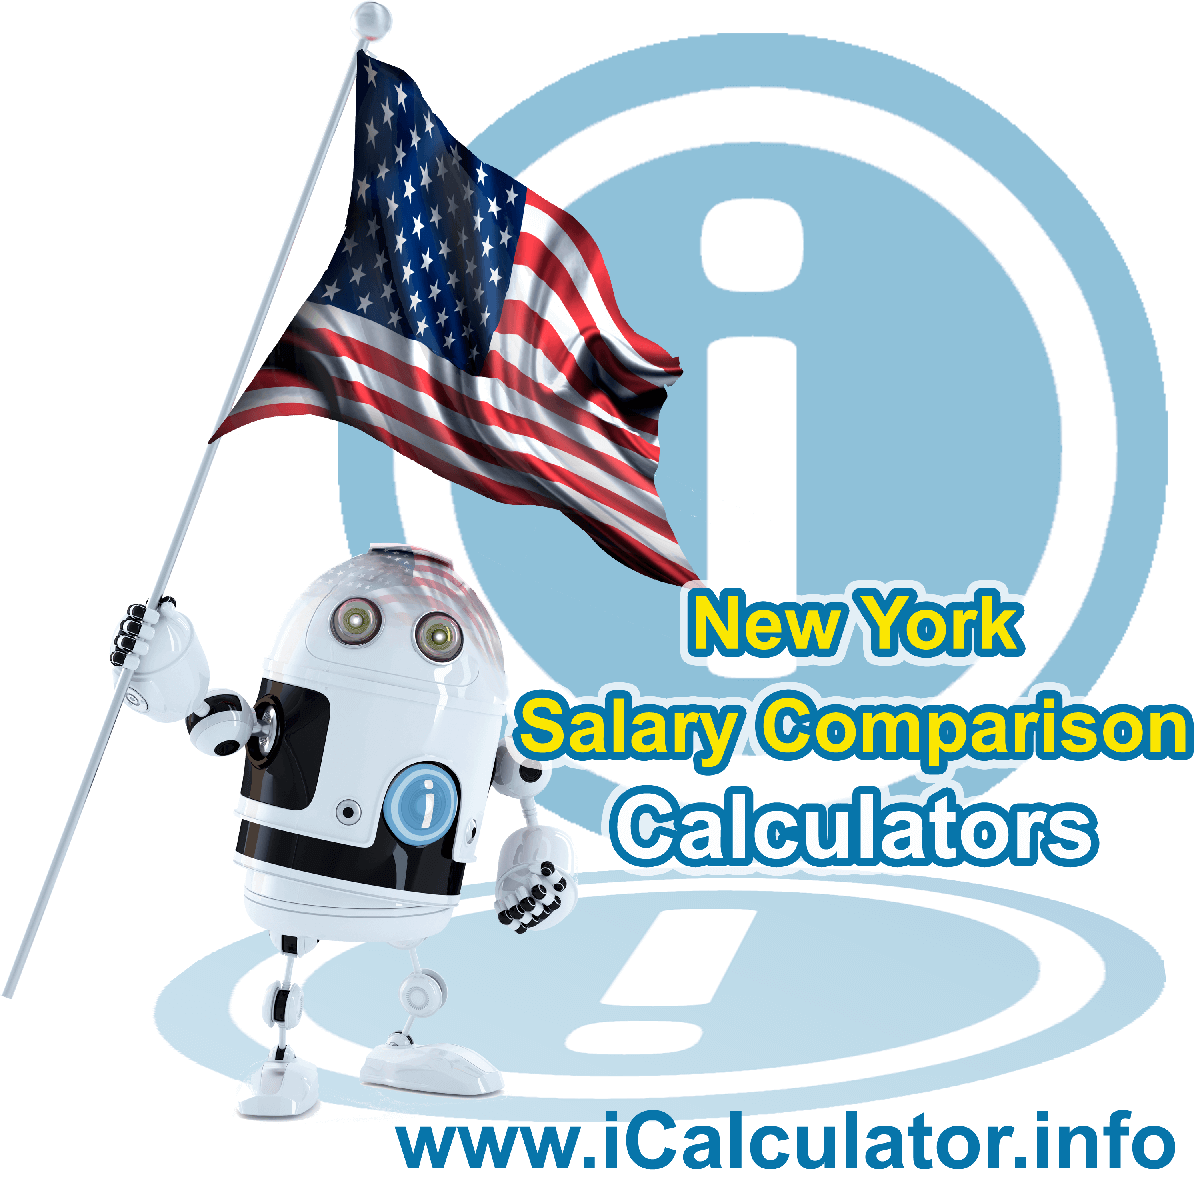 New York Salary Comparison Calculator 2019 | iCalculator | The New York Salary Comparison Calculator allows you to quickly calculate and compare upto 6 salaries in New York or between other states for the 2019 tax year and historical tax years. Its an excellent tool for jobseekers, pay raise comparison and comparison of salaries between different US States